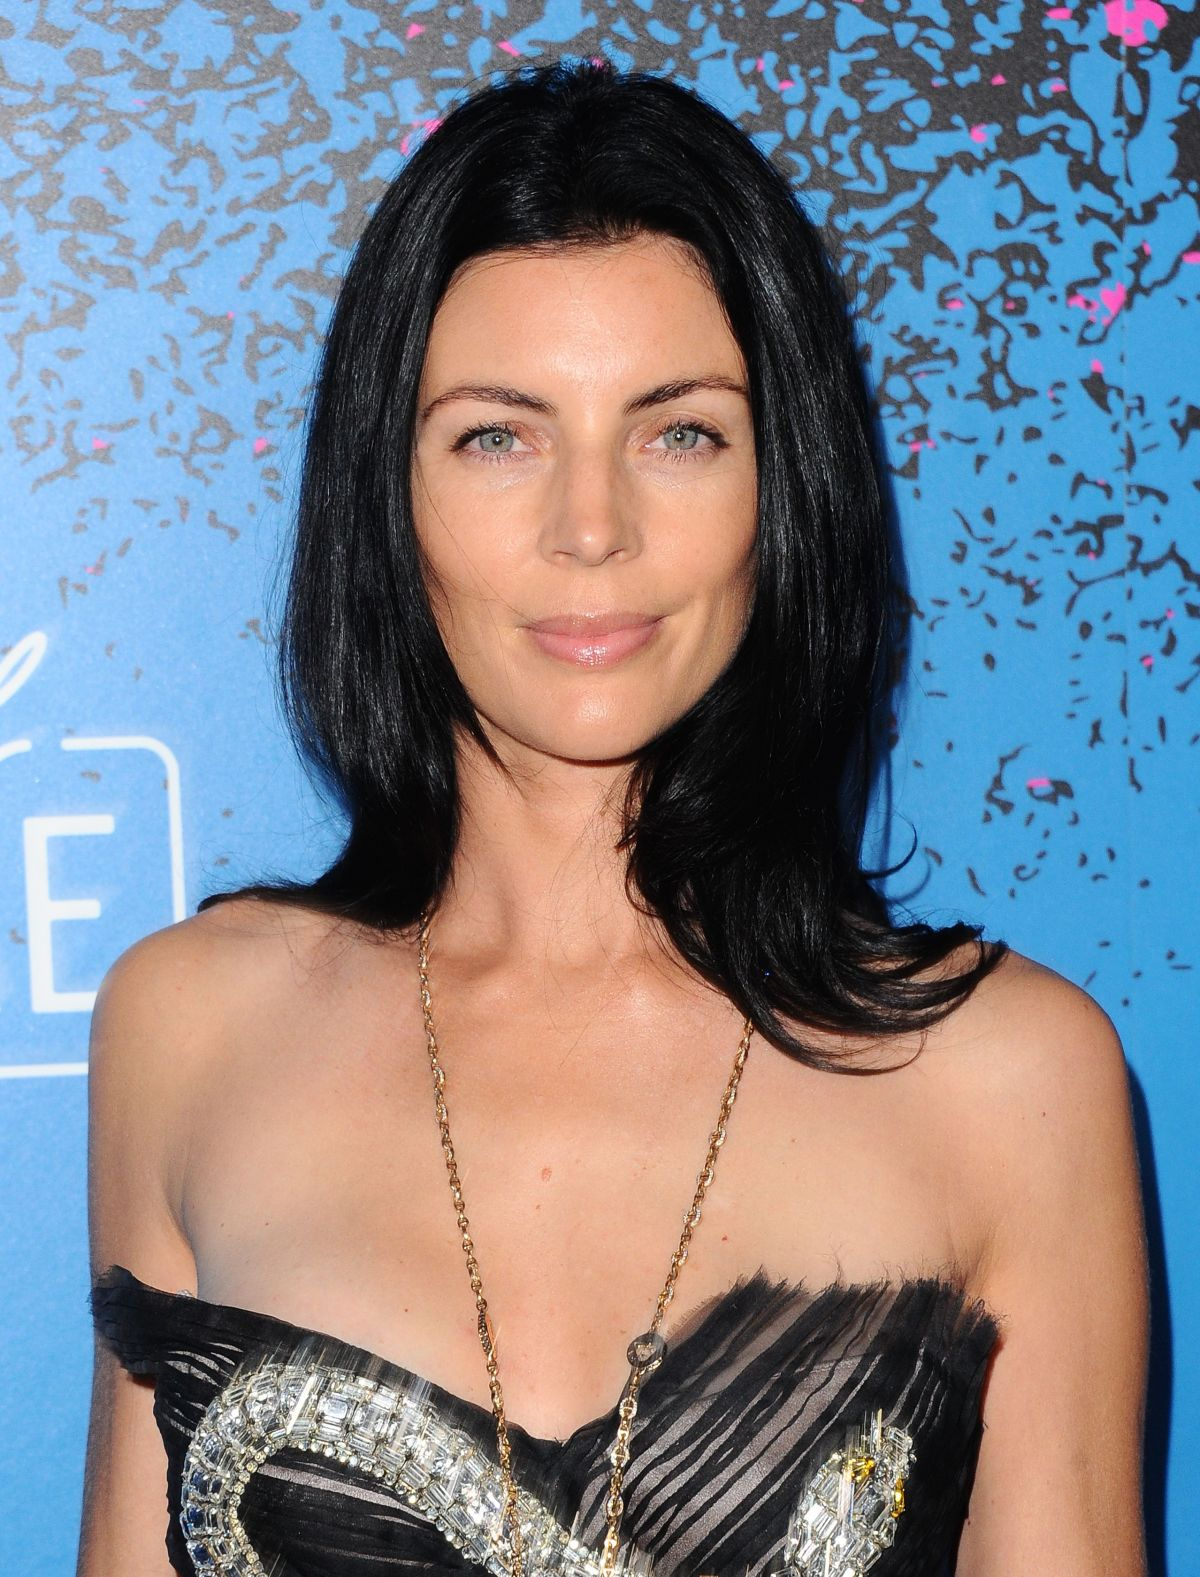 LIBERTY ROSS at Carpool Karaoke Series Launch in Los Angeles 08/07/2017